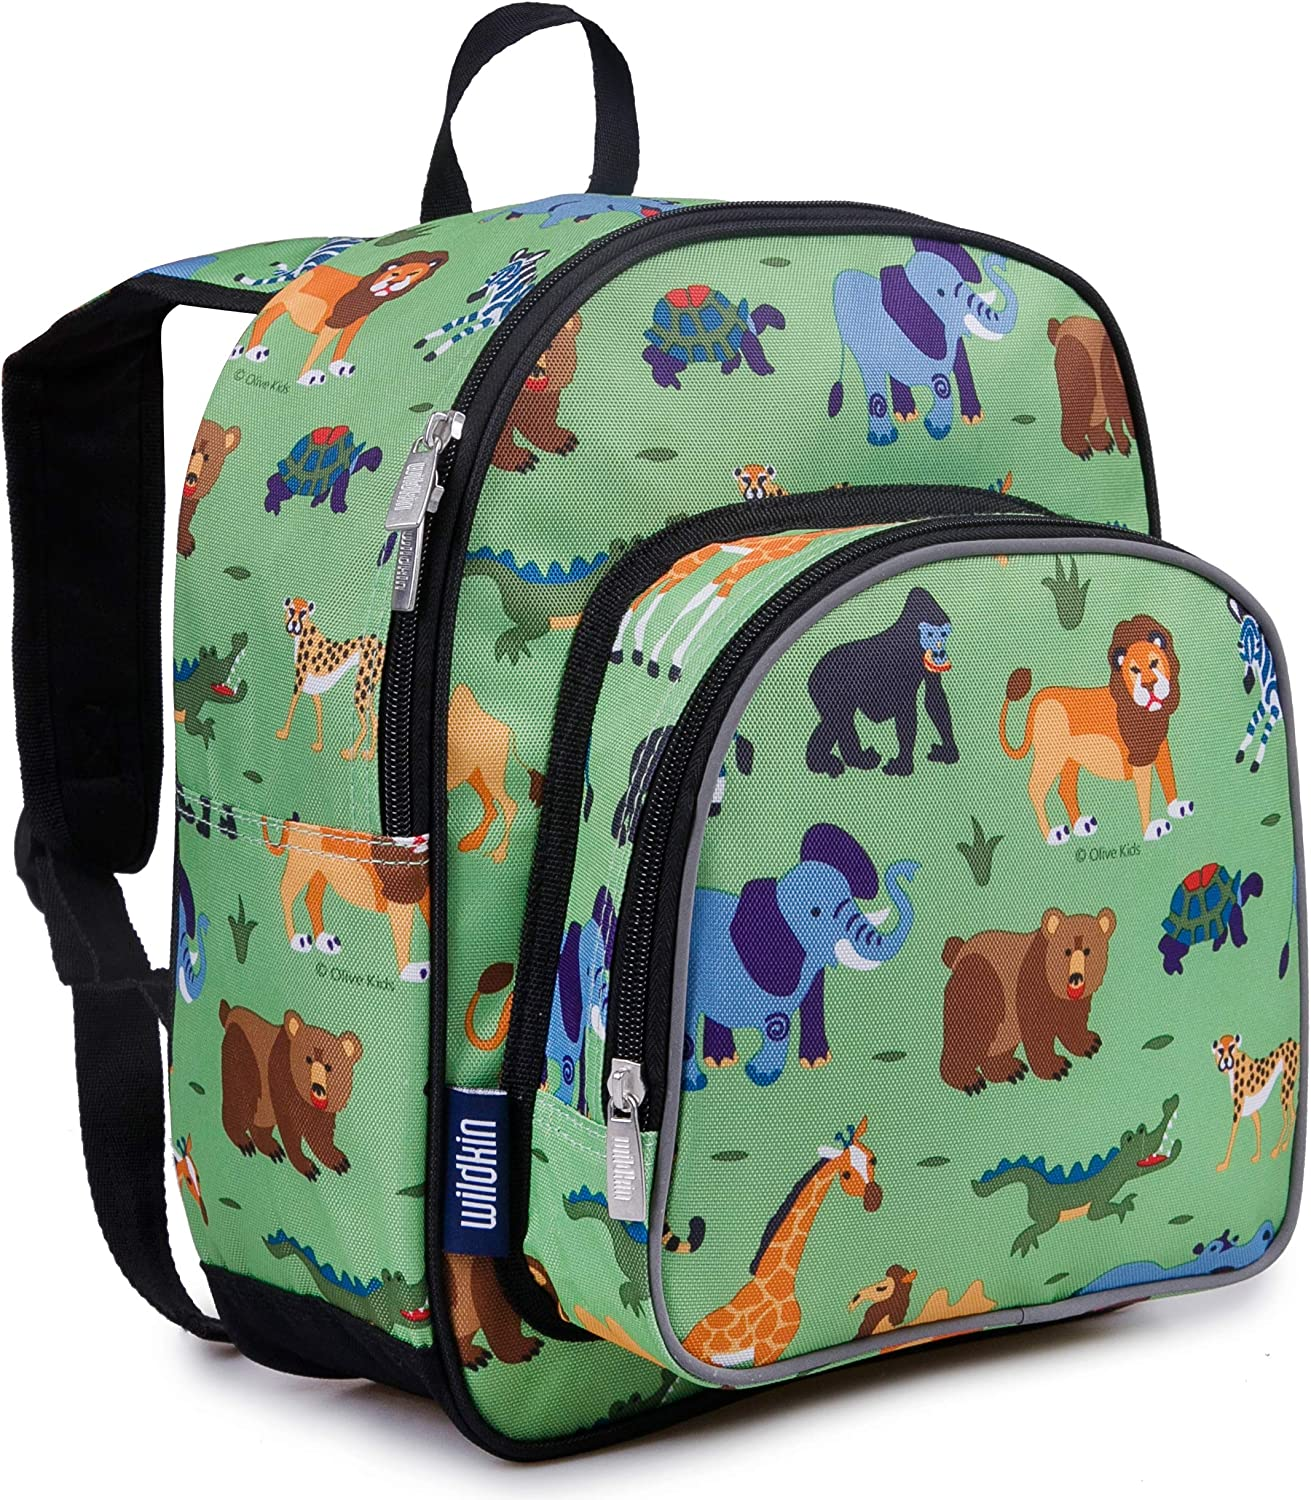 Monkeys Blue Girls//Boys Preschool Toddler Backpack /& Lunch Box Set